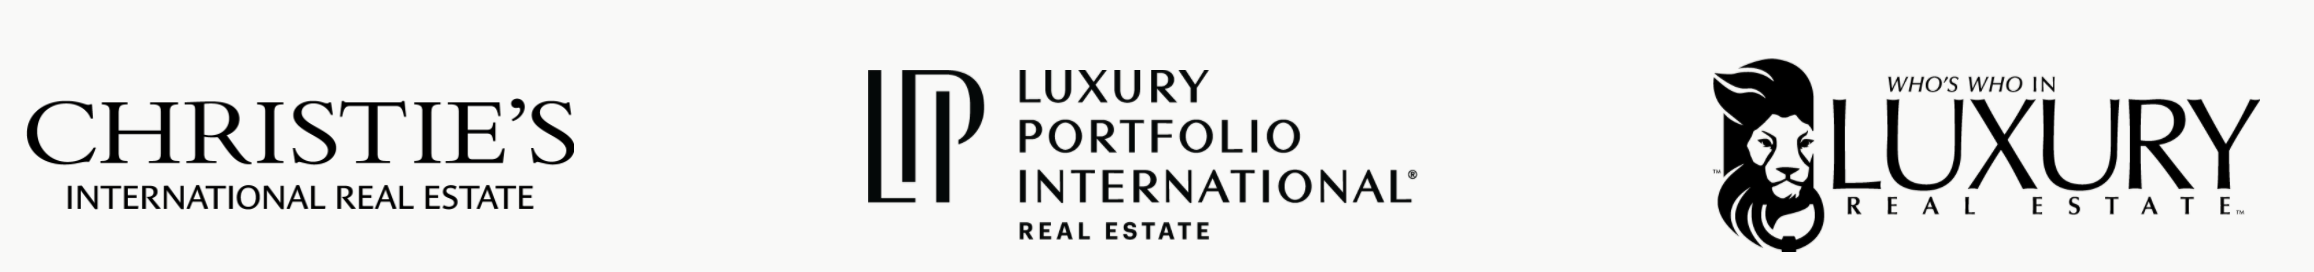 luxury real estate parternship logos